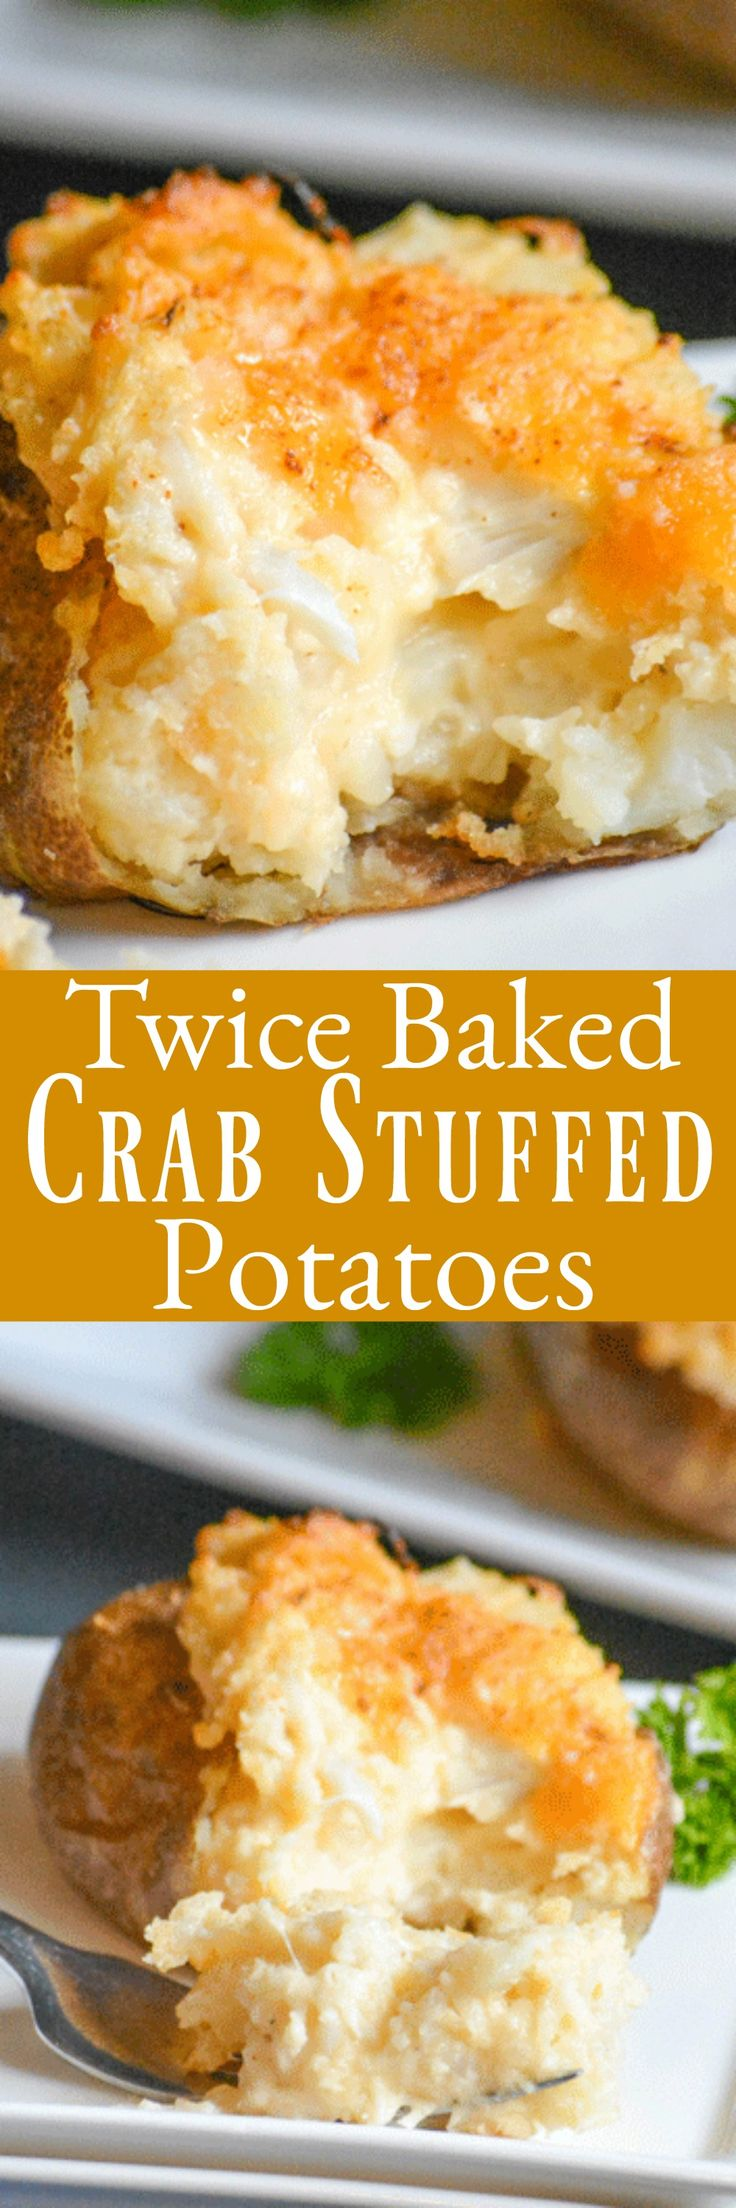 Creamy twice baked potatoes are stuffed with lump crab and cheddar cheese for the ultimate party treat. Easier than they sound, these Twice Baked Crab Stuffed Potatoes also make an indulgent meal all by themselves.